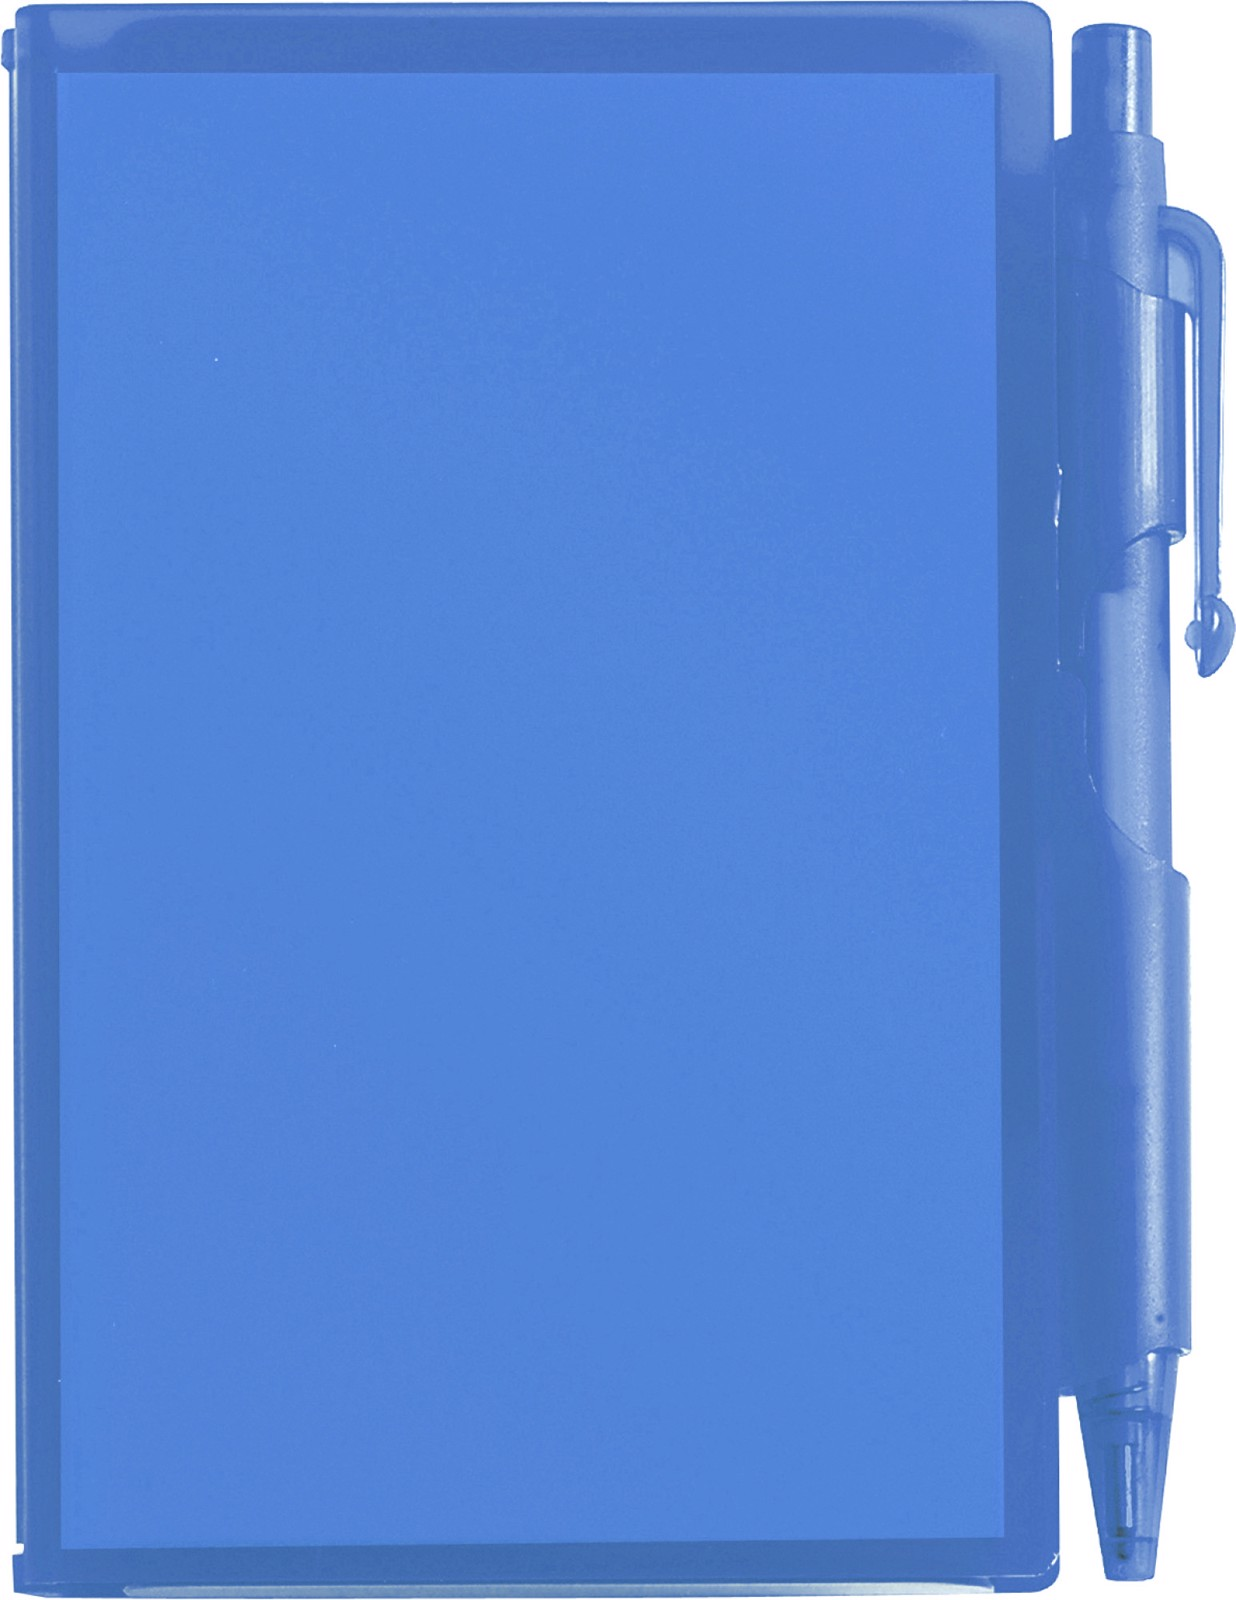 ABS notebook with pen - Blue